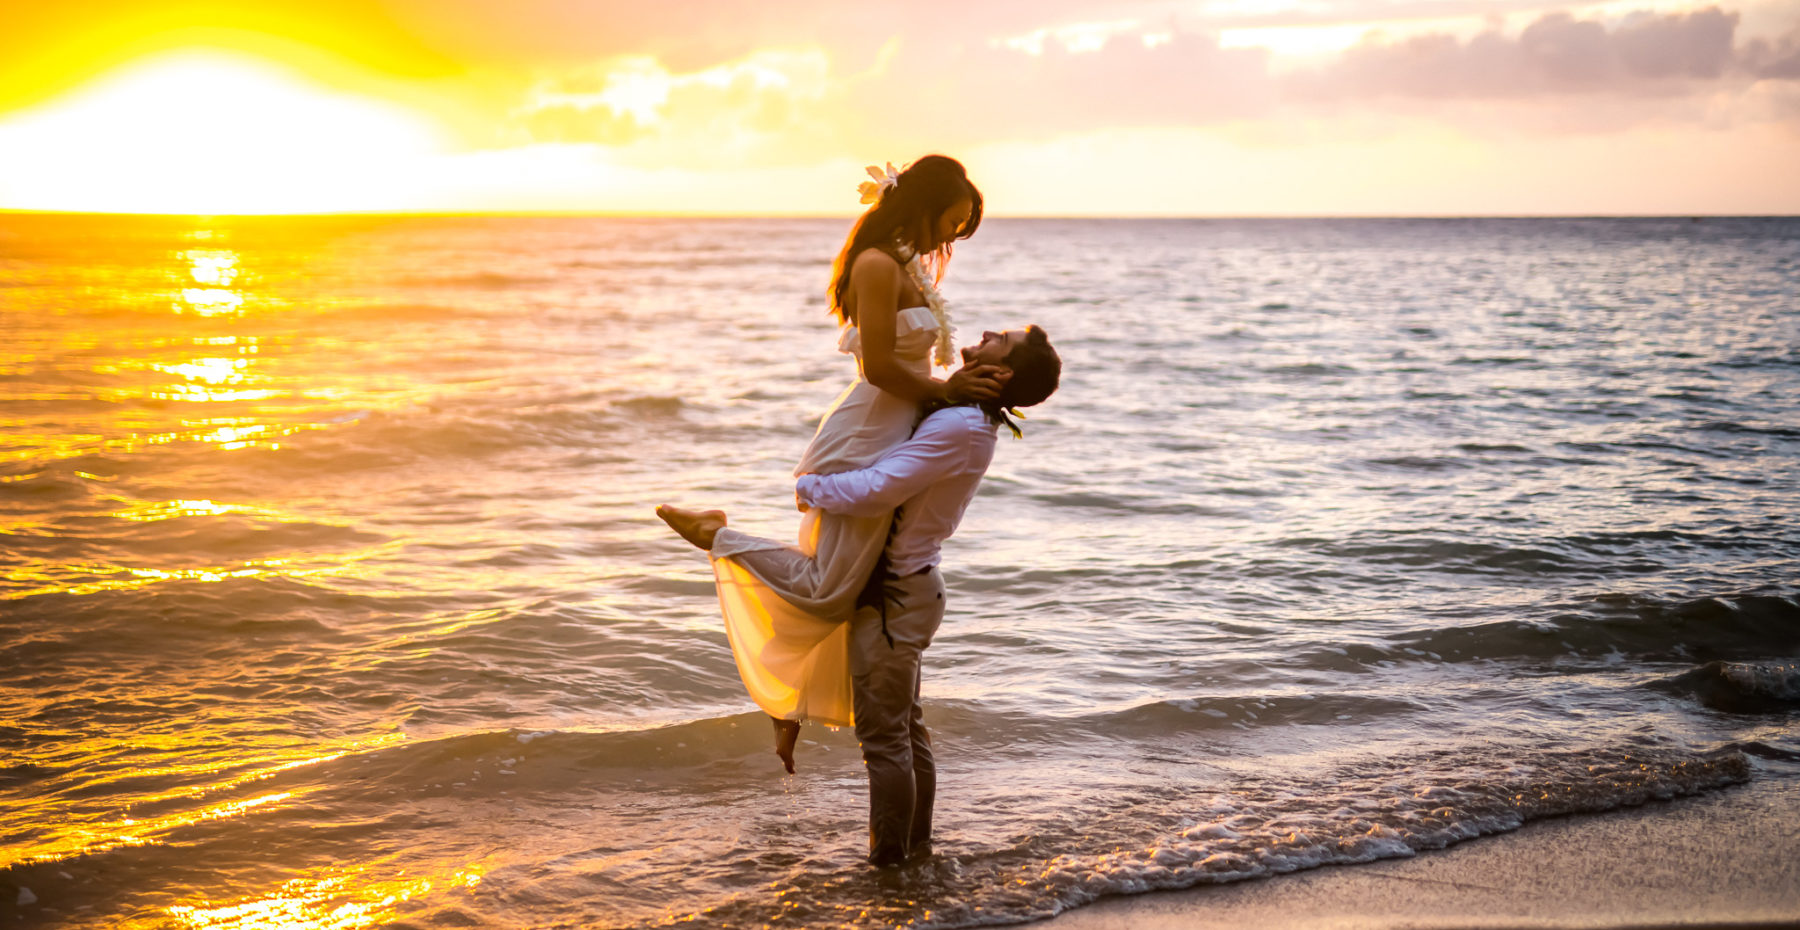 Groom holding bride in the ocean at sunset